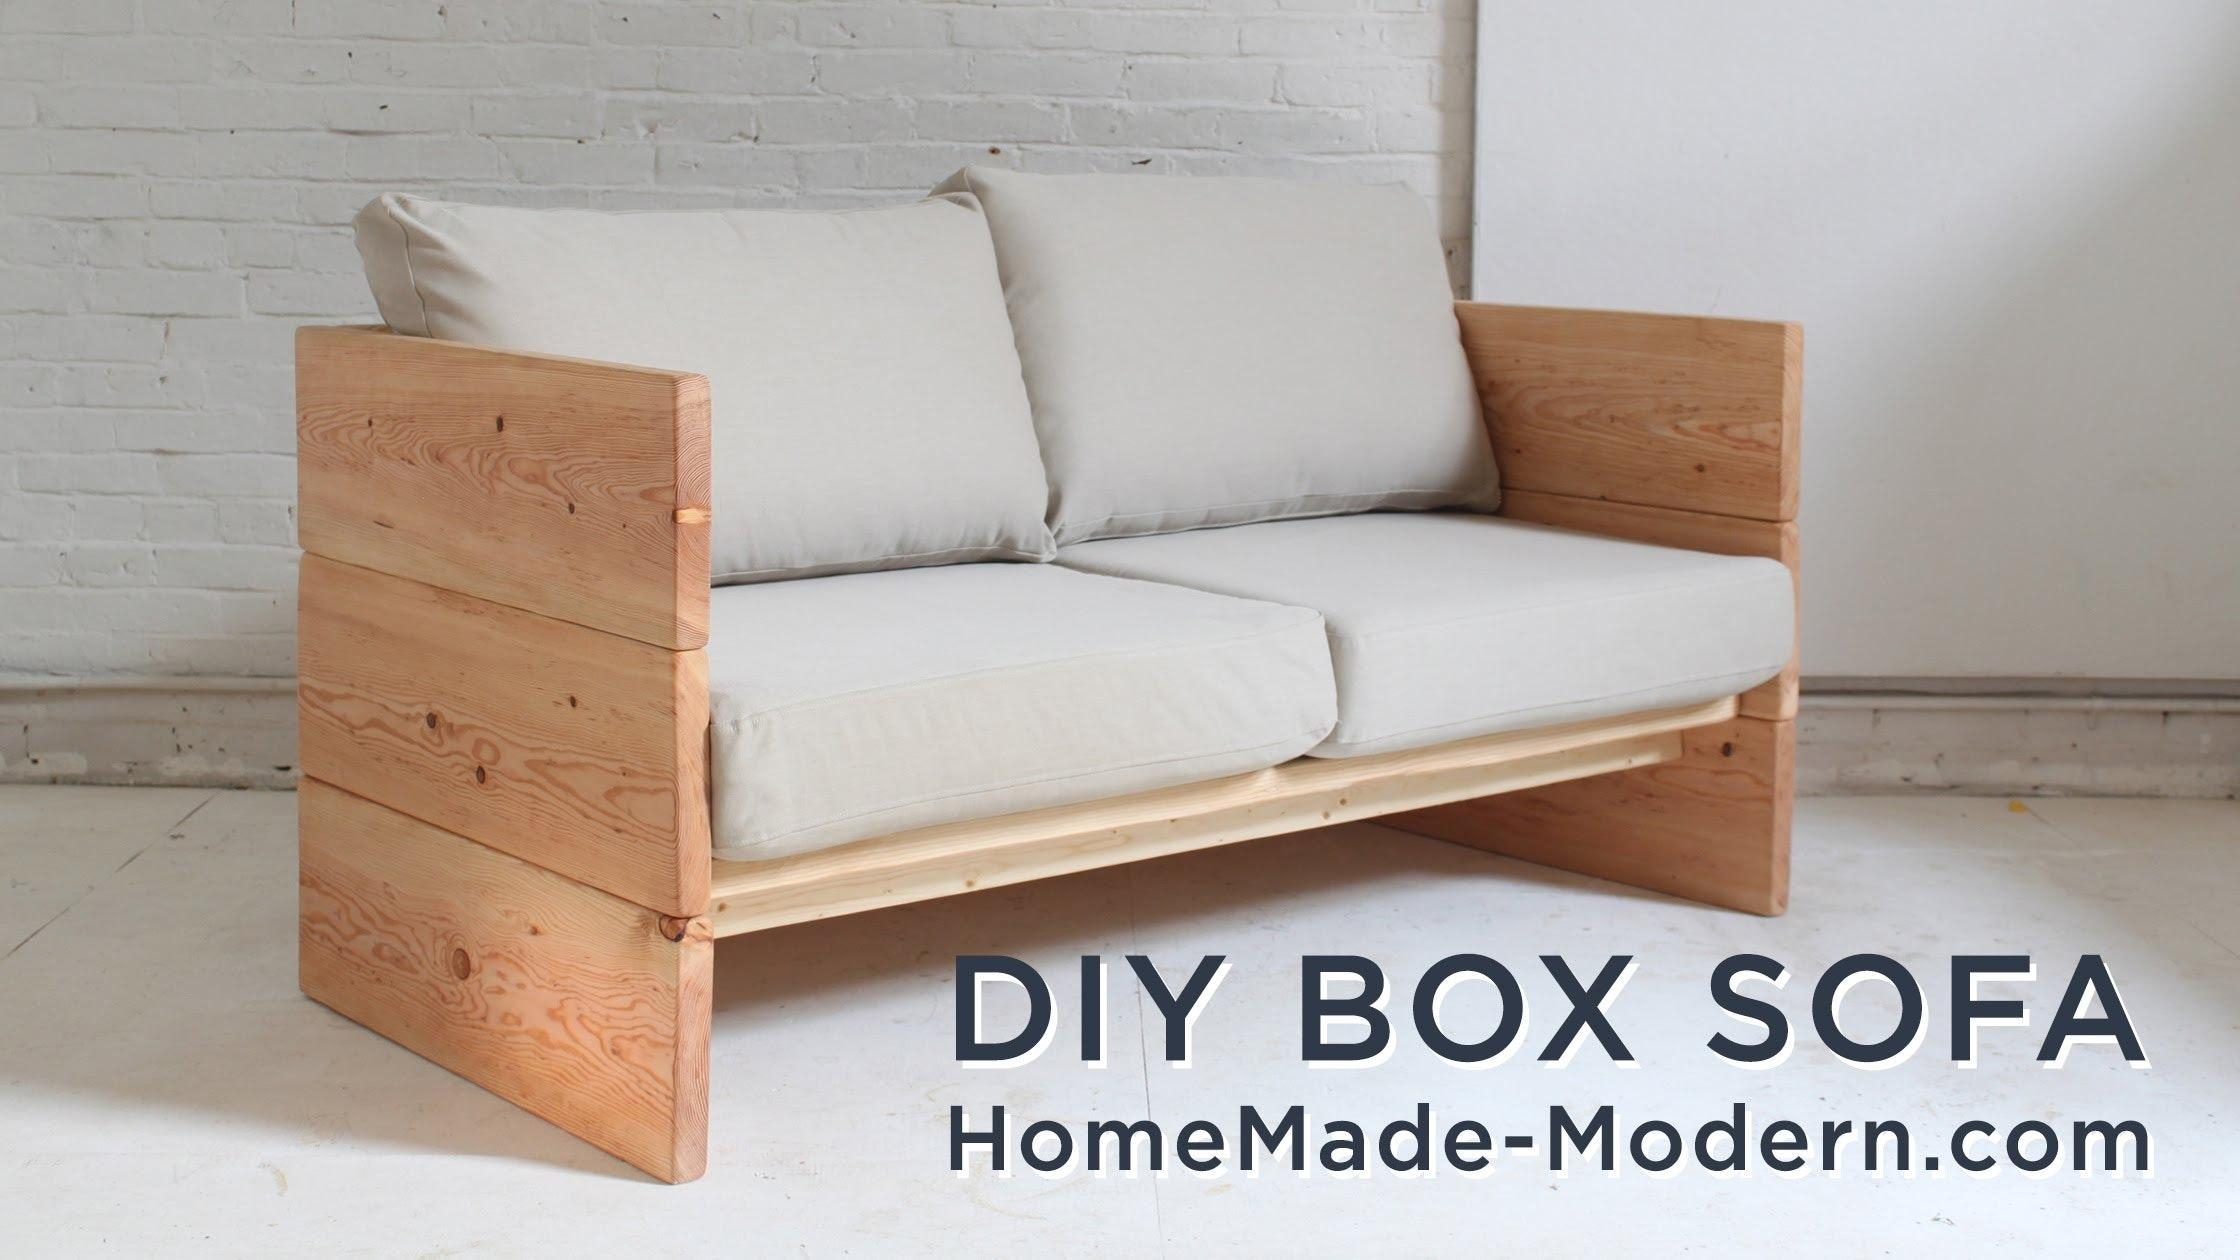 Easy Wood Bench Plans Diy Daybed To Build Pics On Charming Simple Regarding Diy Sectional Sofa Frame Plans (Image 9 of 15)